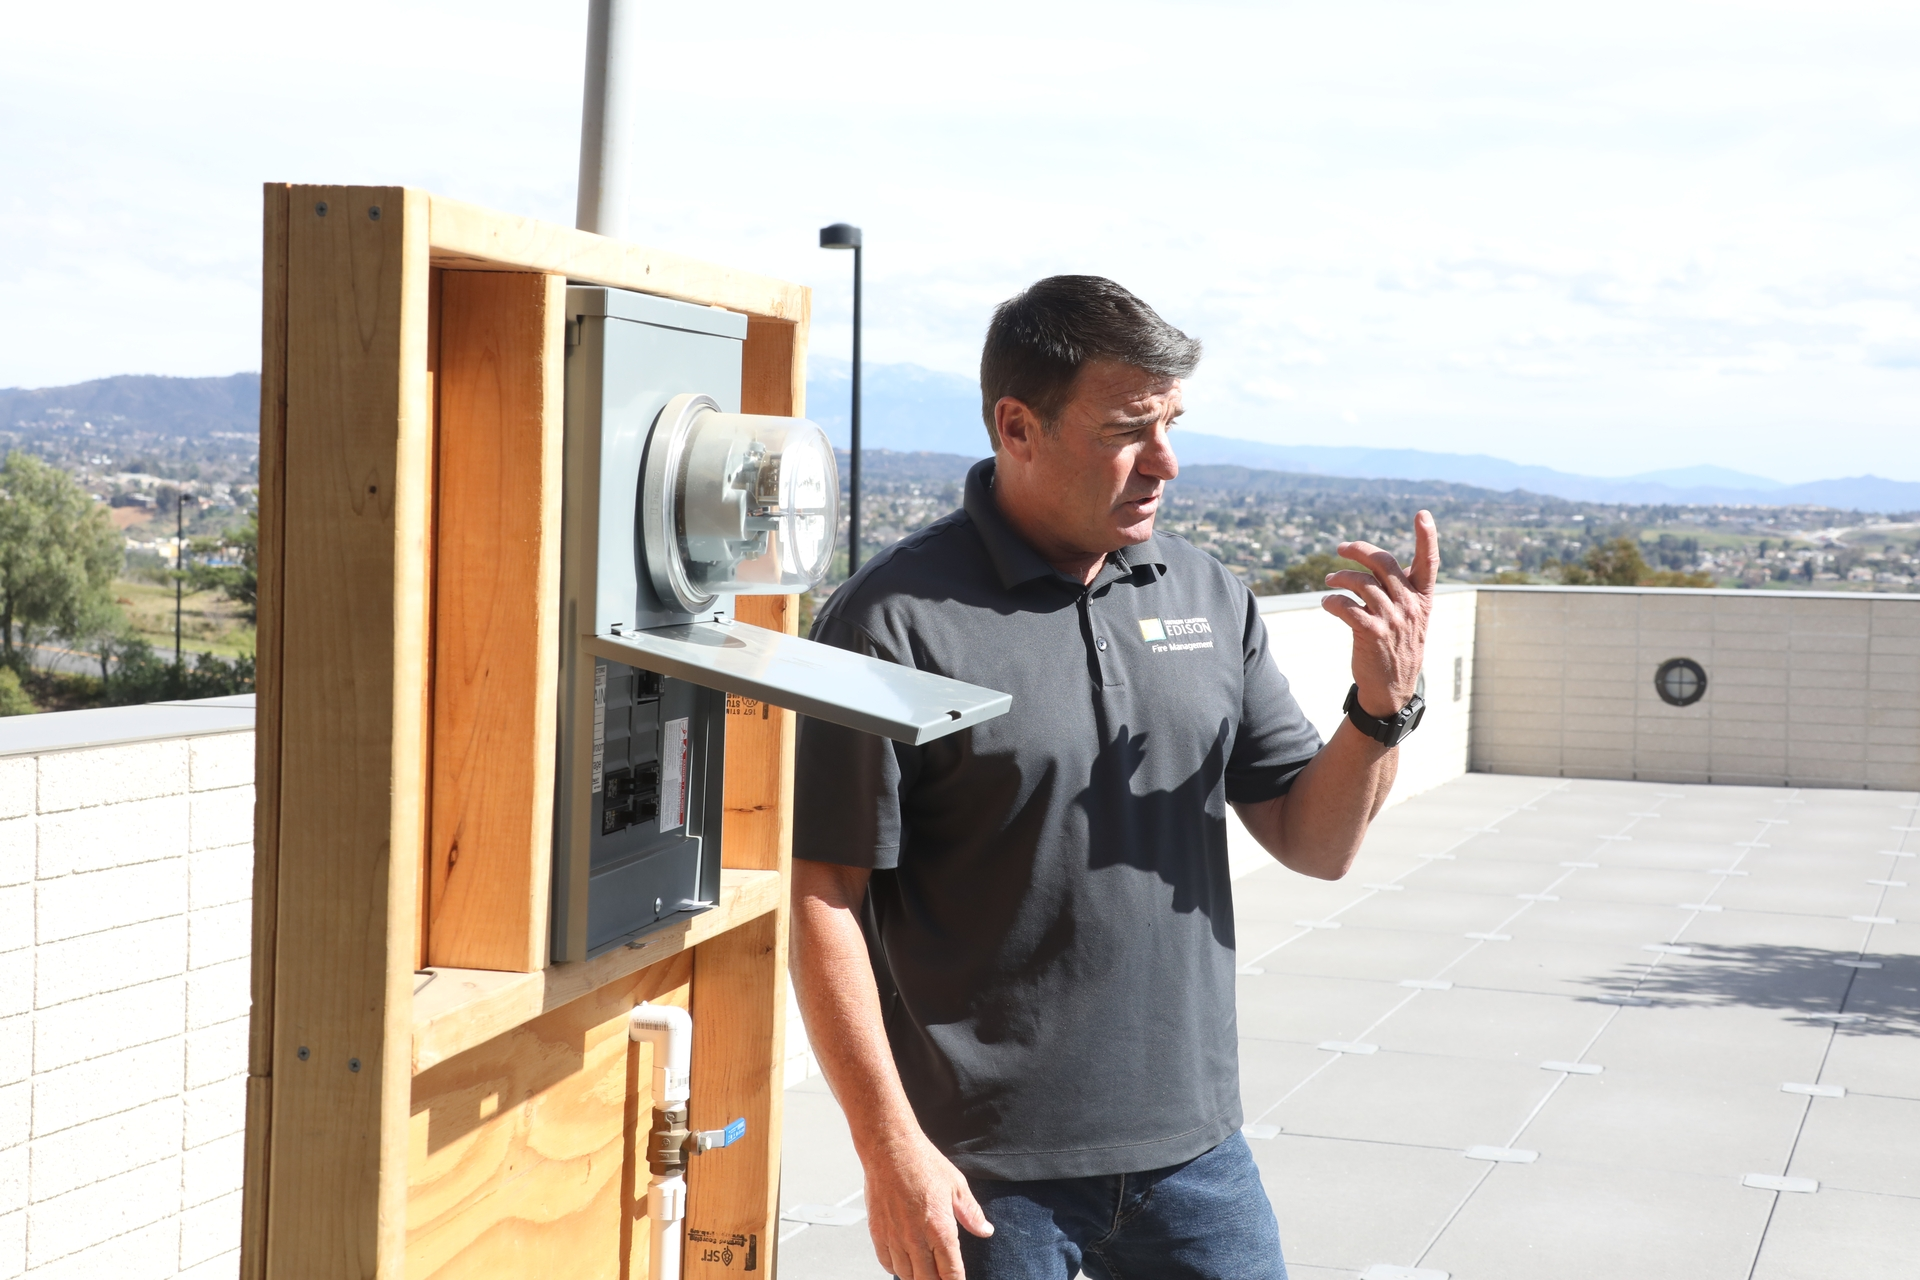 Scott Brown, a member of SCE's Fire Management Team, teaches electrical safety to students at Crafton Hills College.